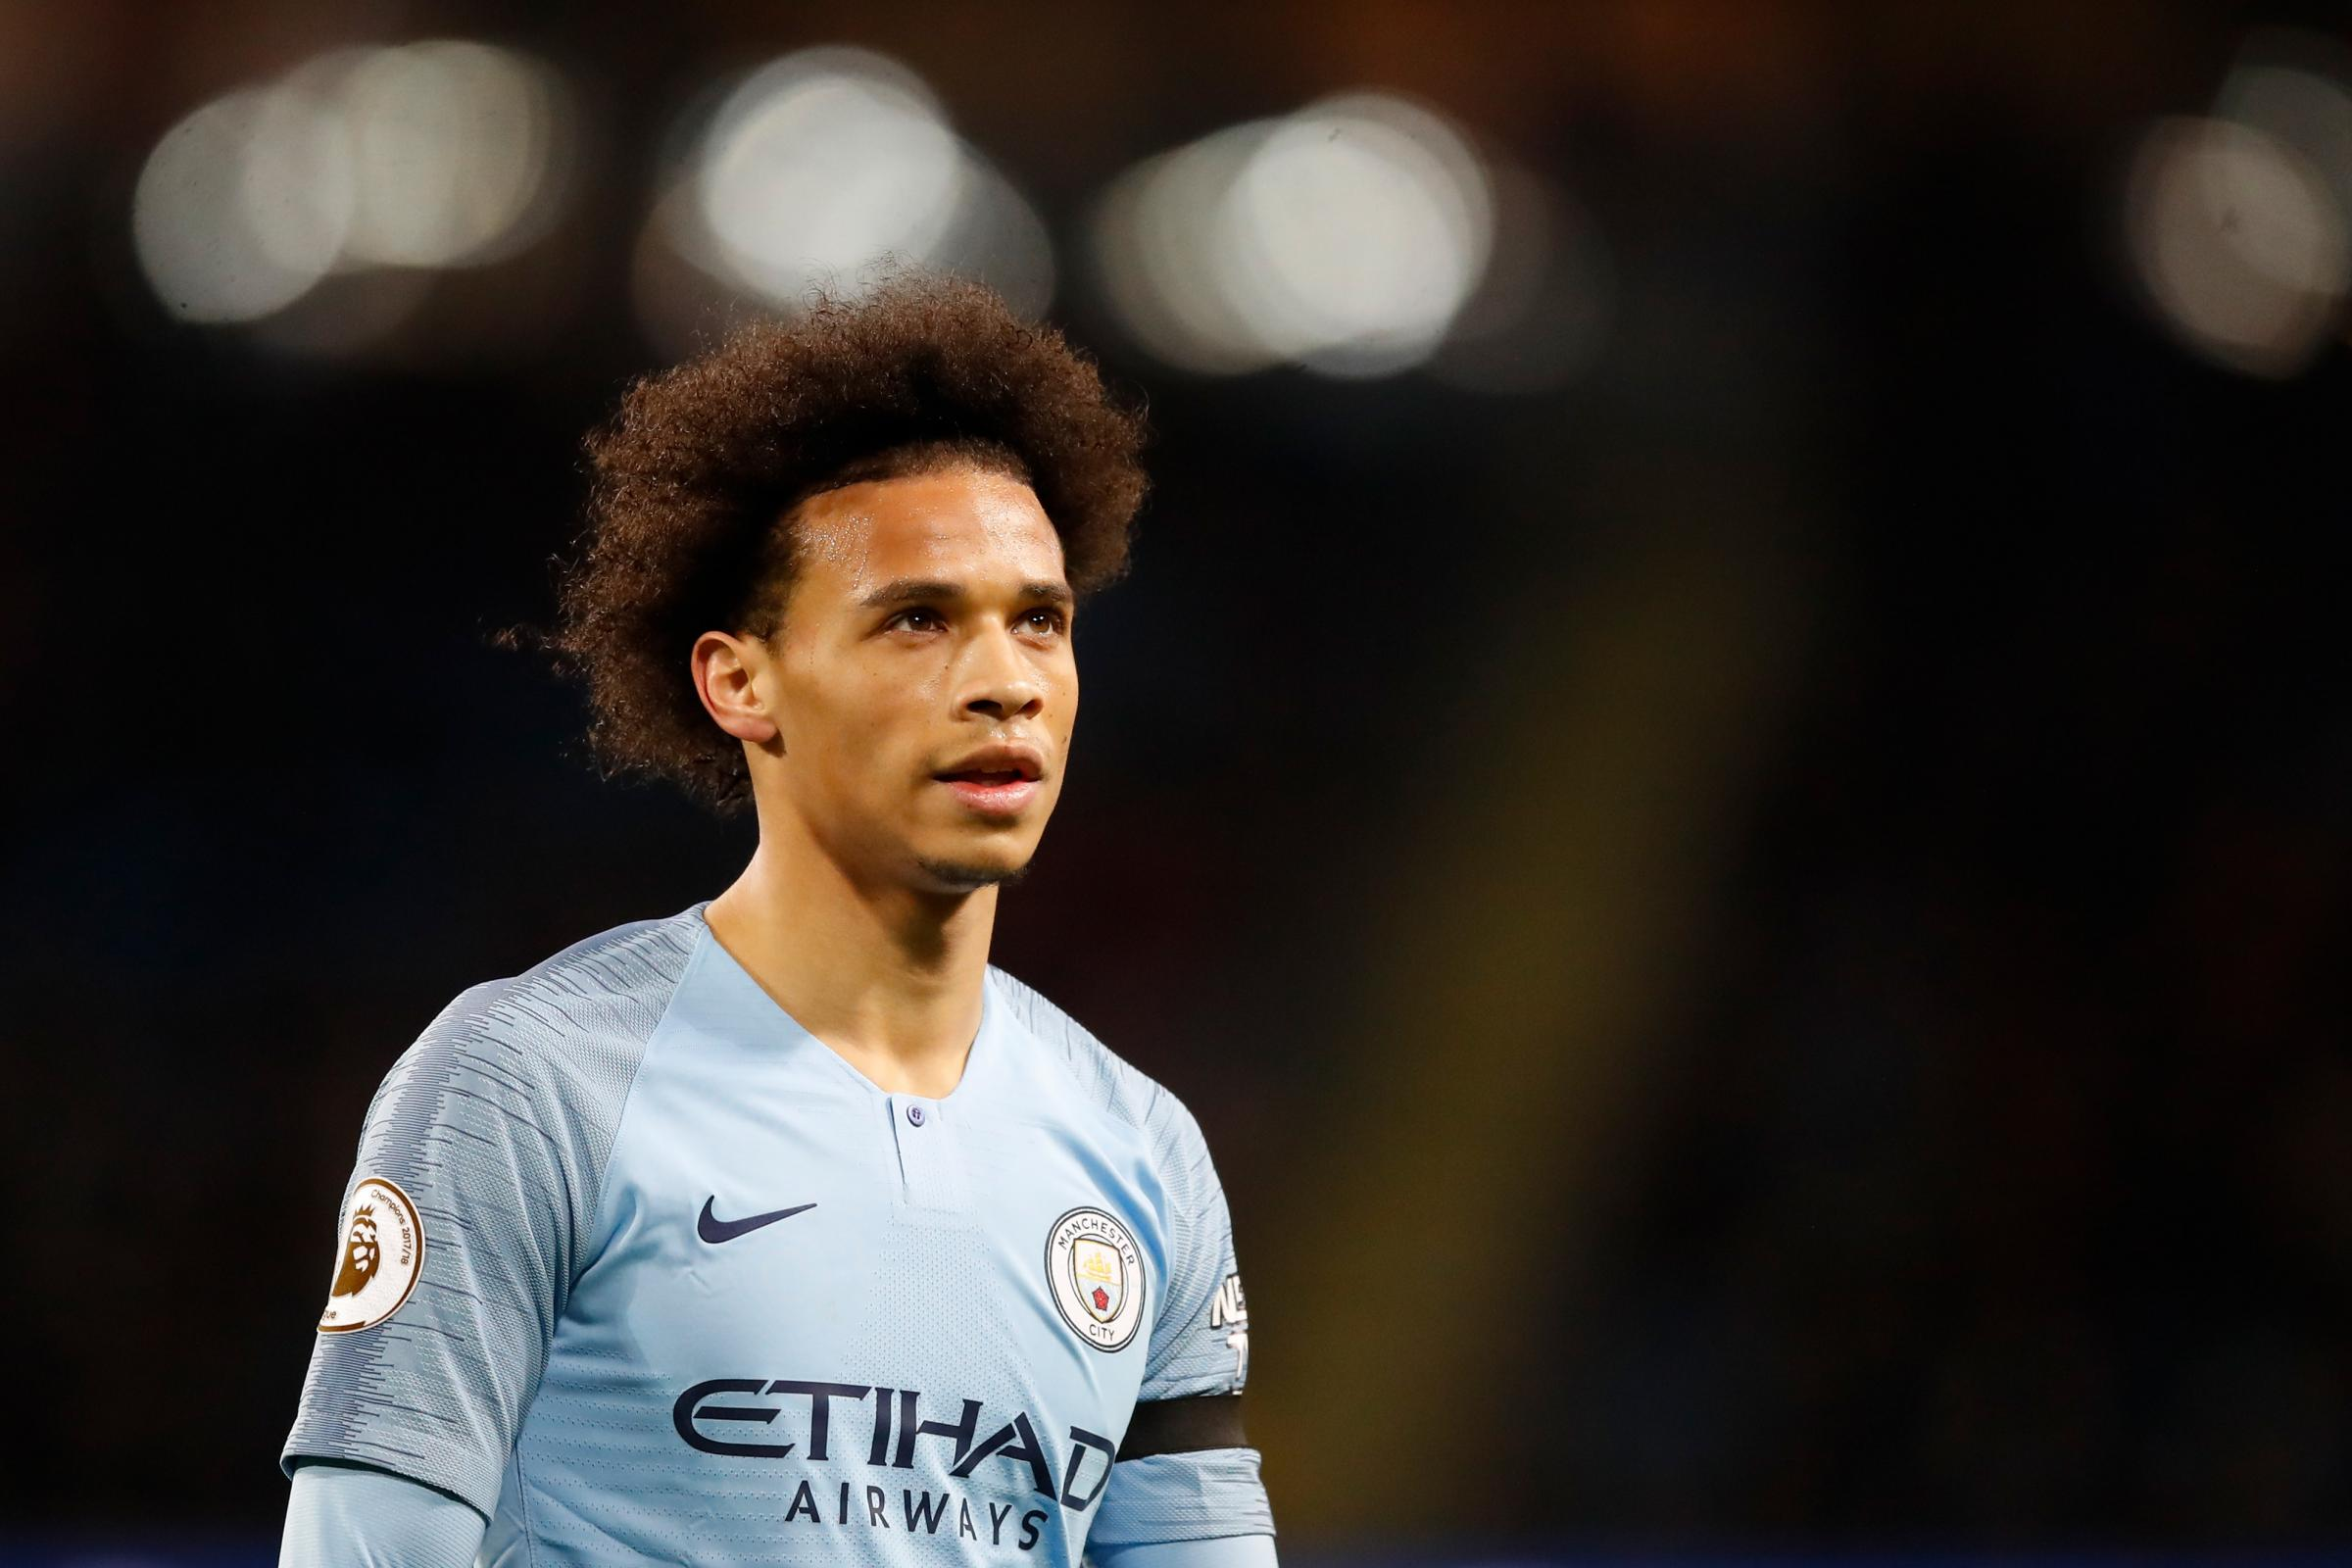 Leroy Sane feels Manchester City now have the bit between their teeth